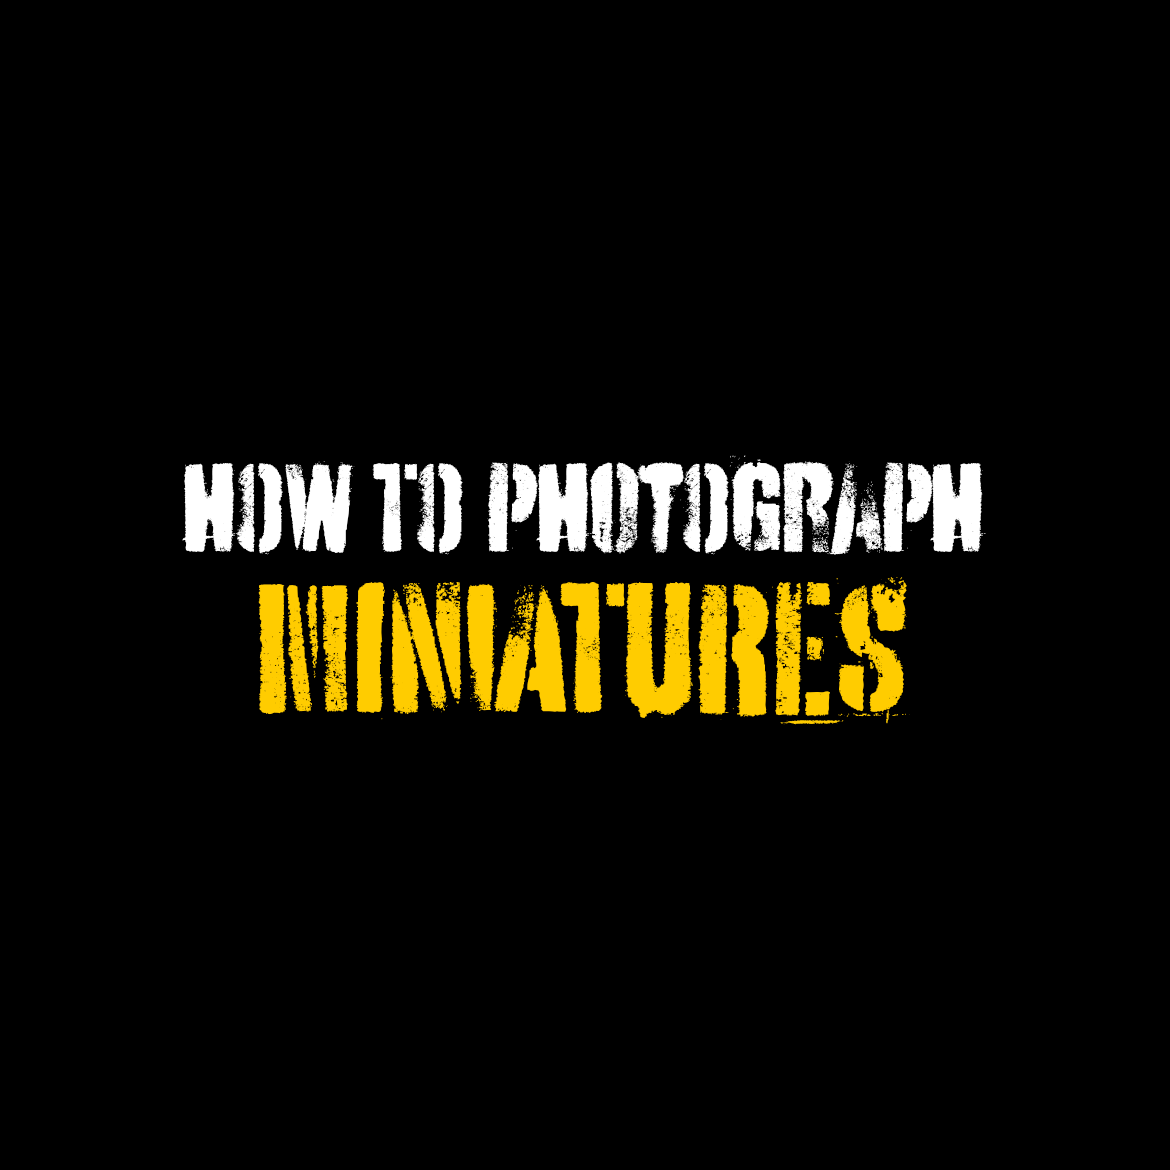 How to photograph miniatures